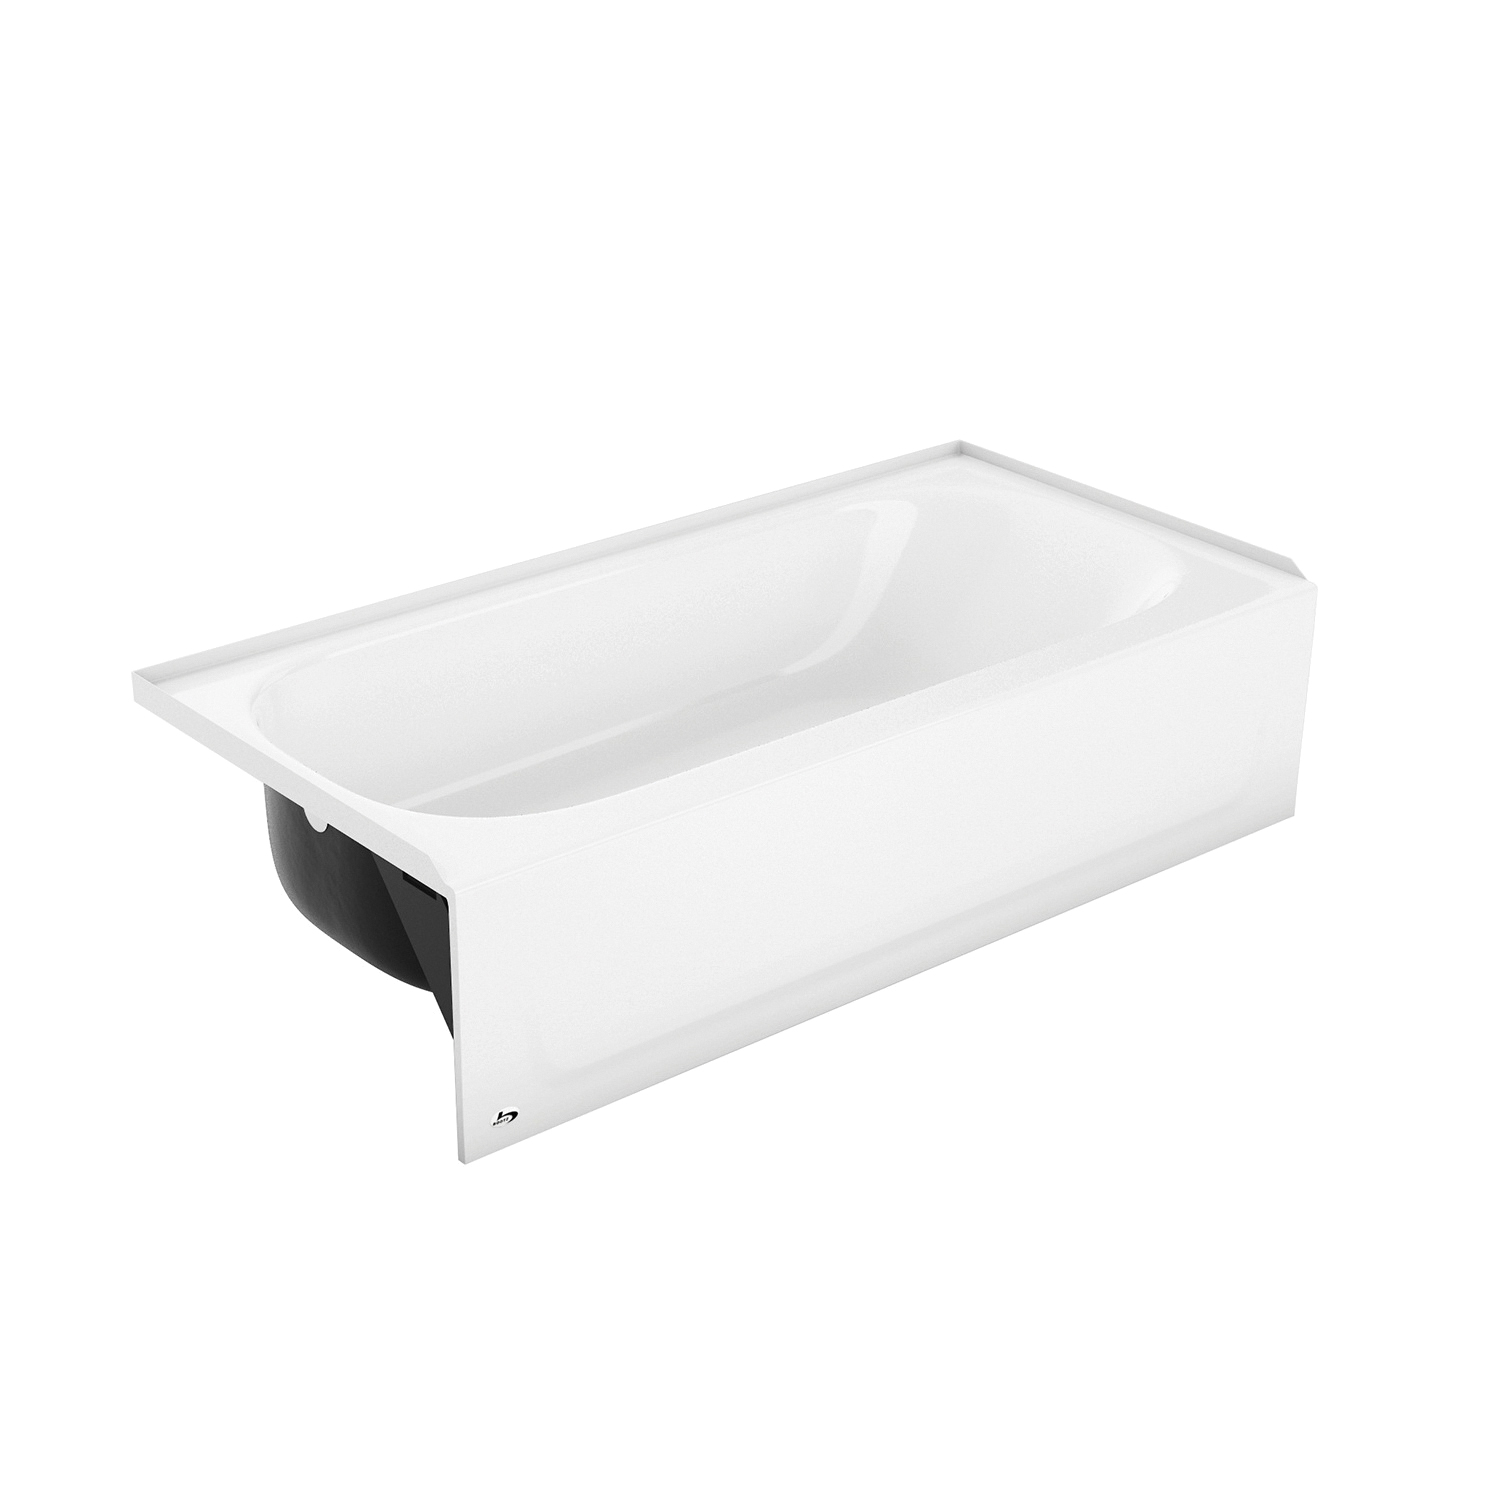 BOOTZ® 011-3364-00 Aloha Bathtub, Rectangular, 60 in L x 30 in W, Right Drain, White, Domestic